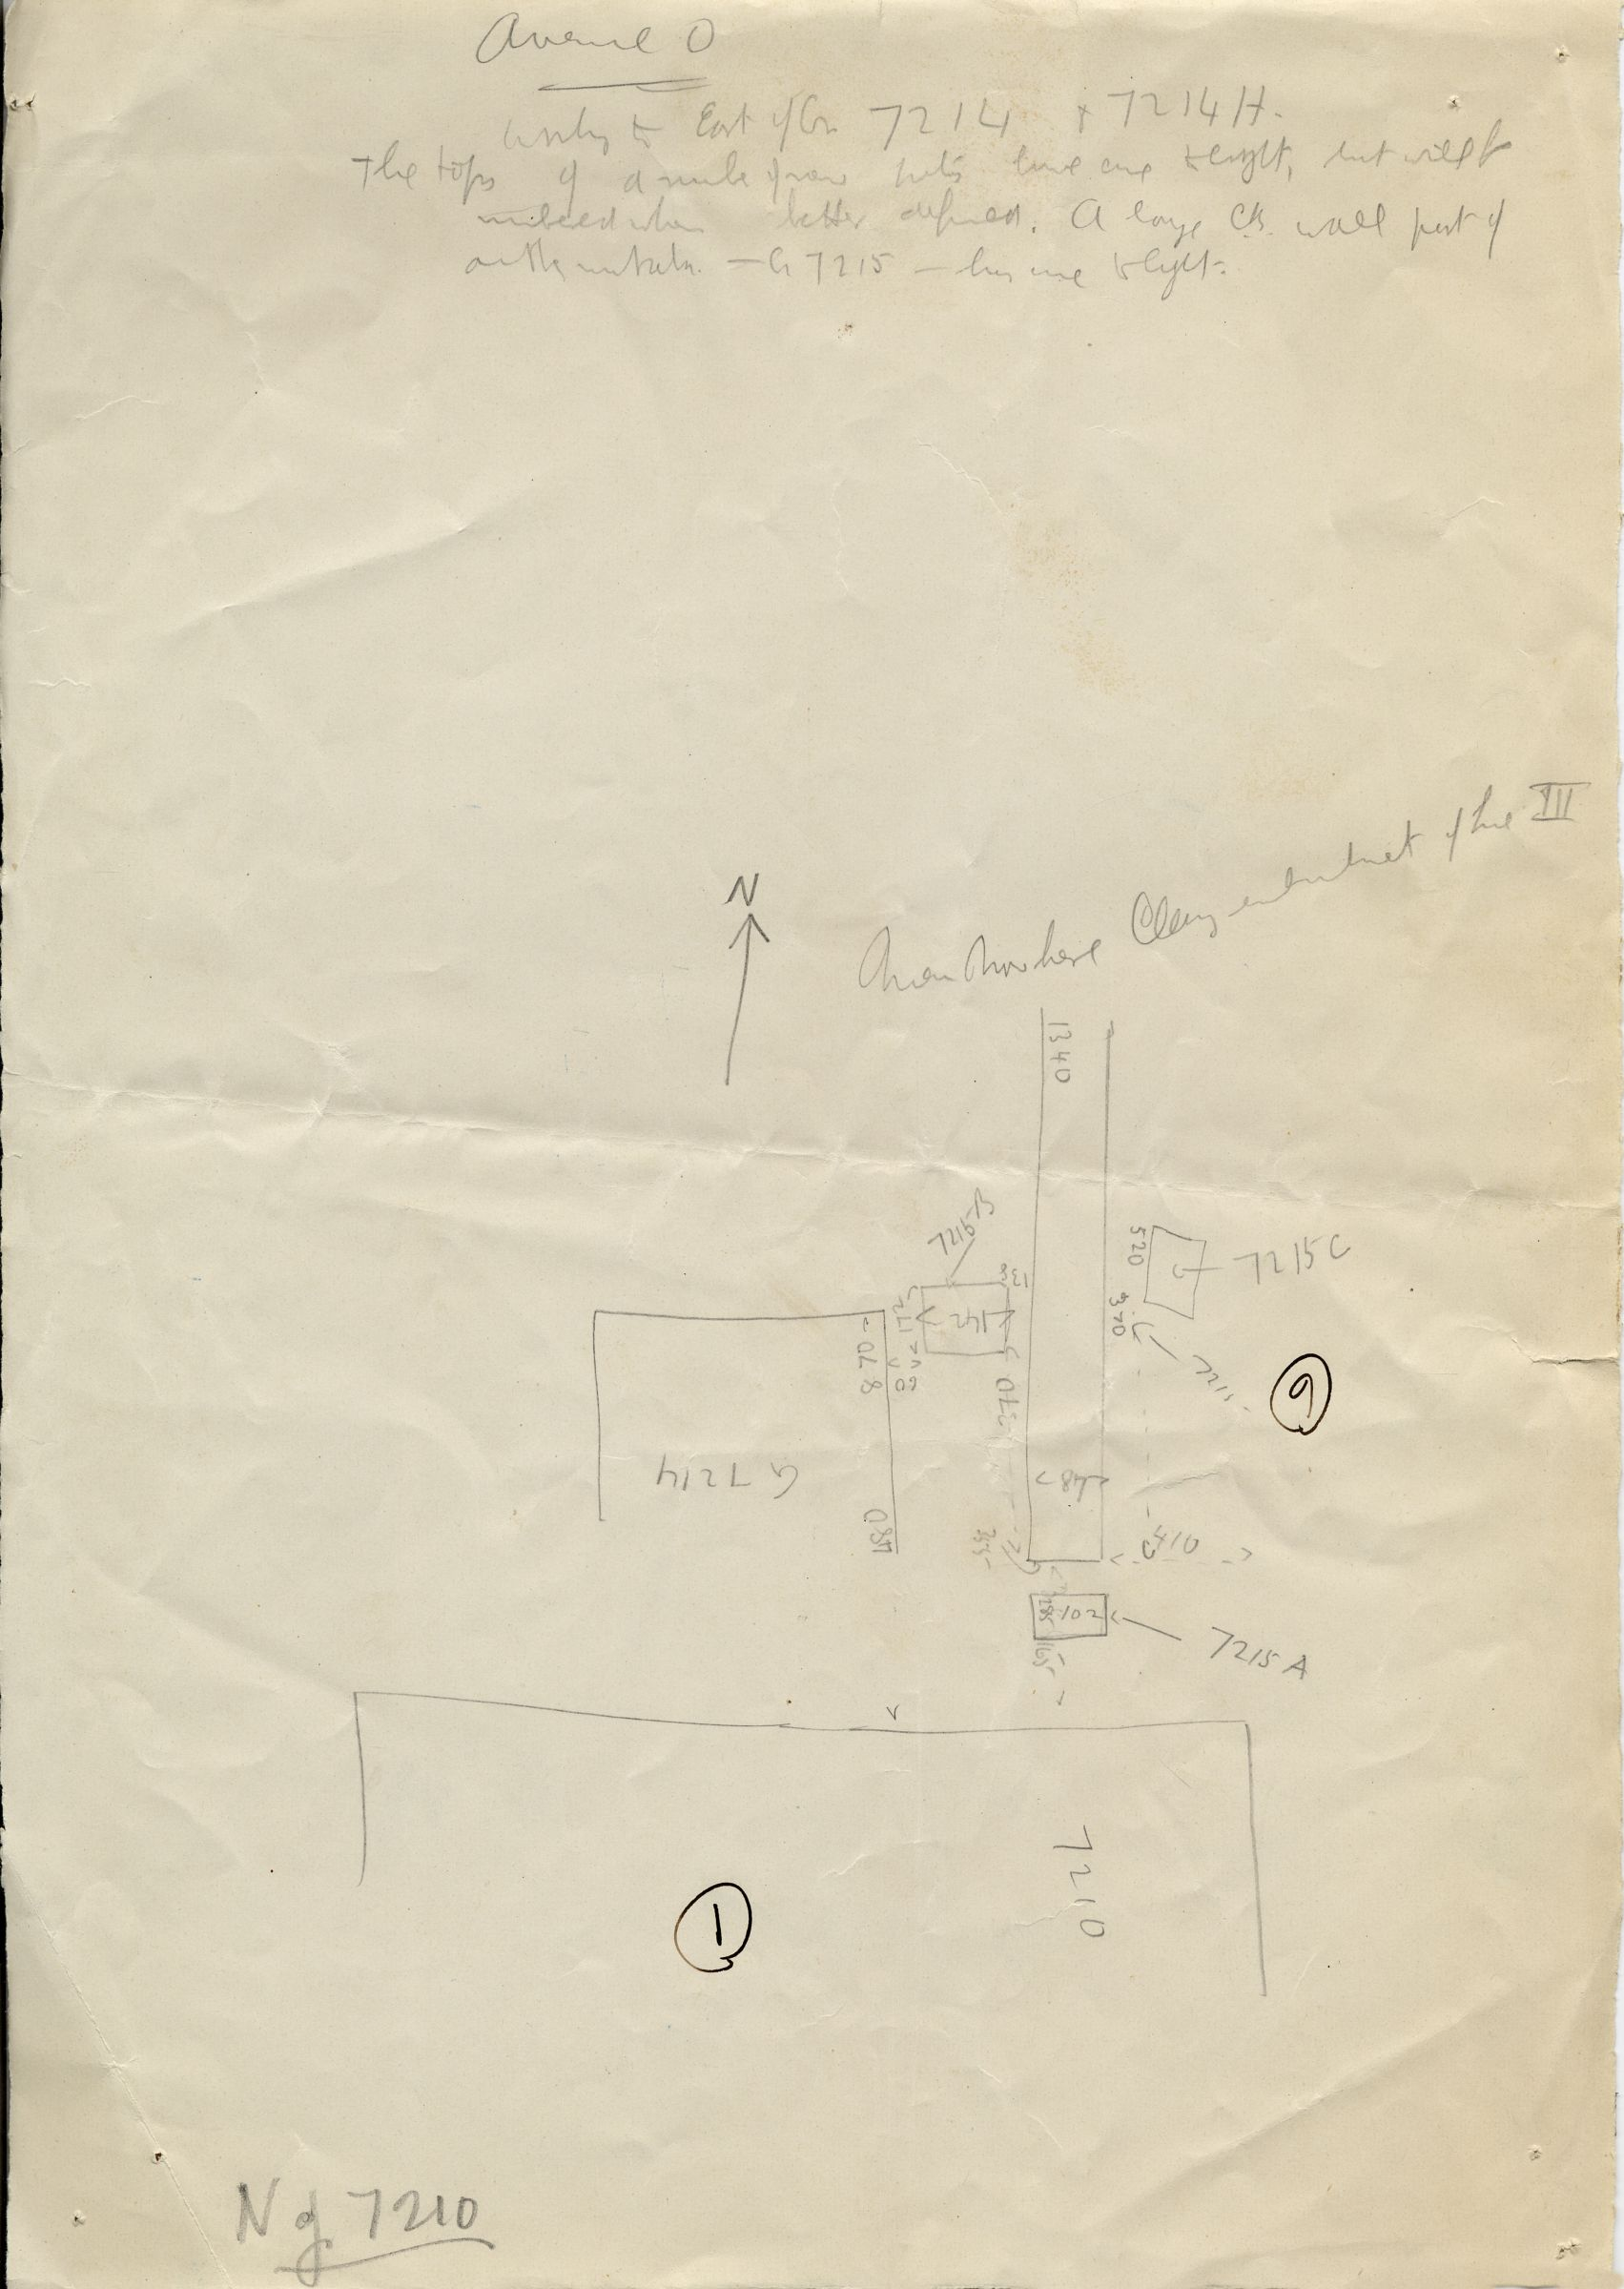 Maps and plans: Avenue G 0: G 7214 and G 7215